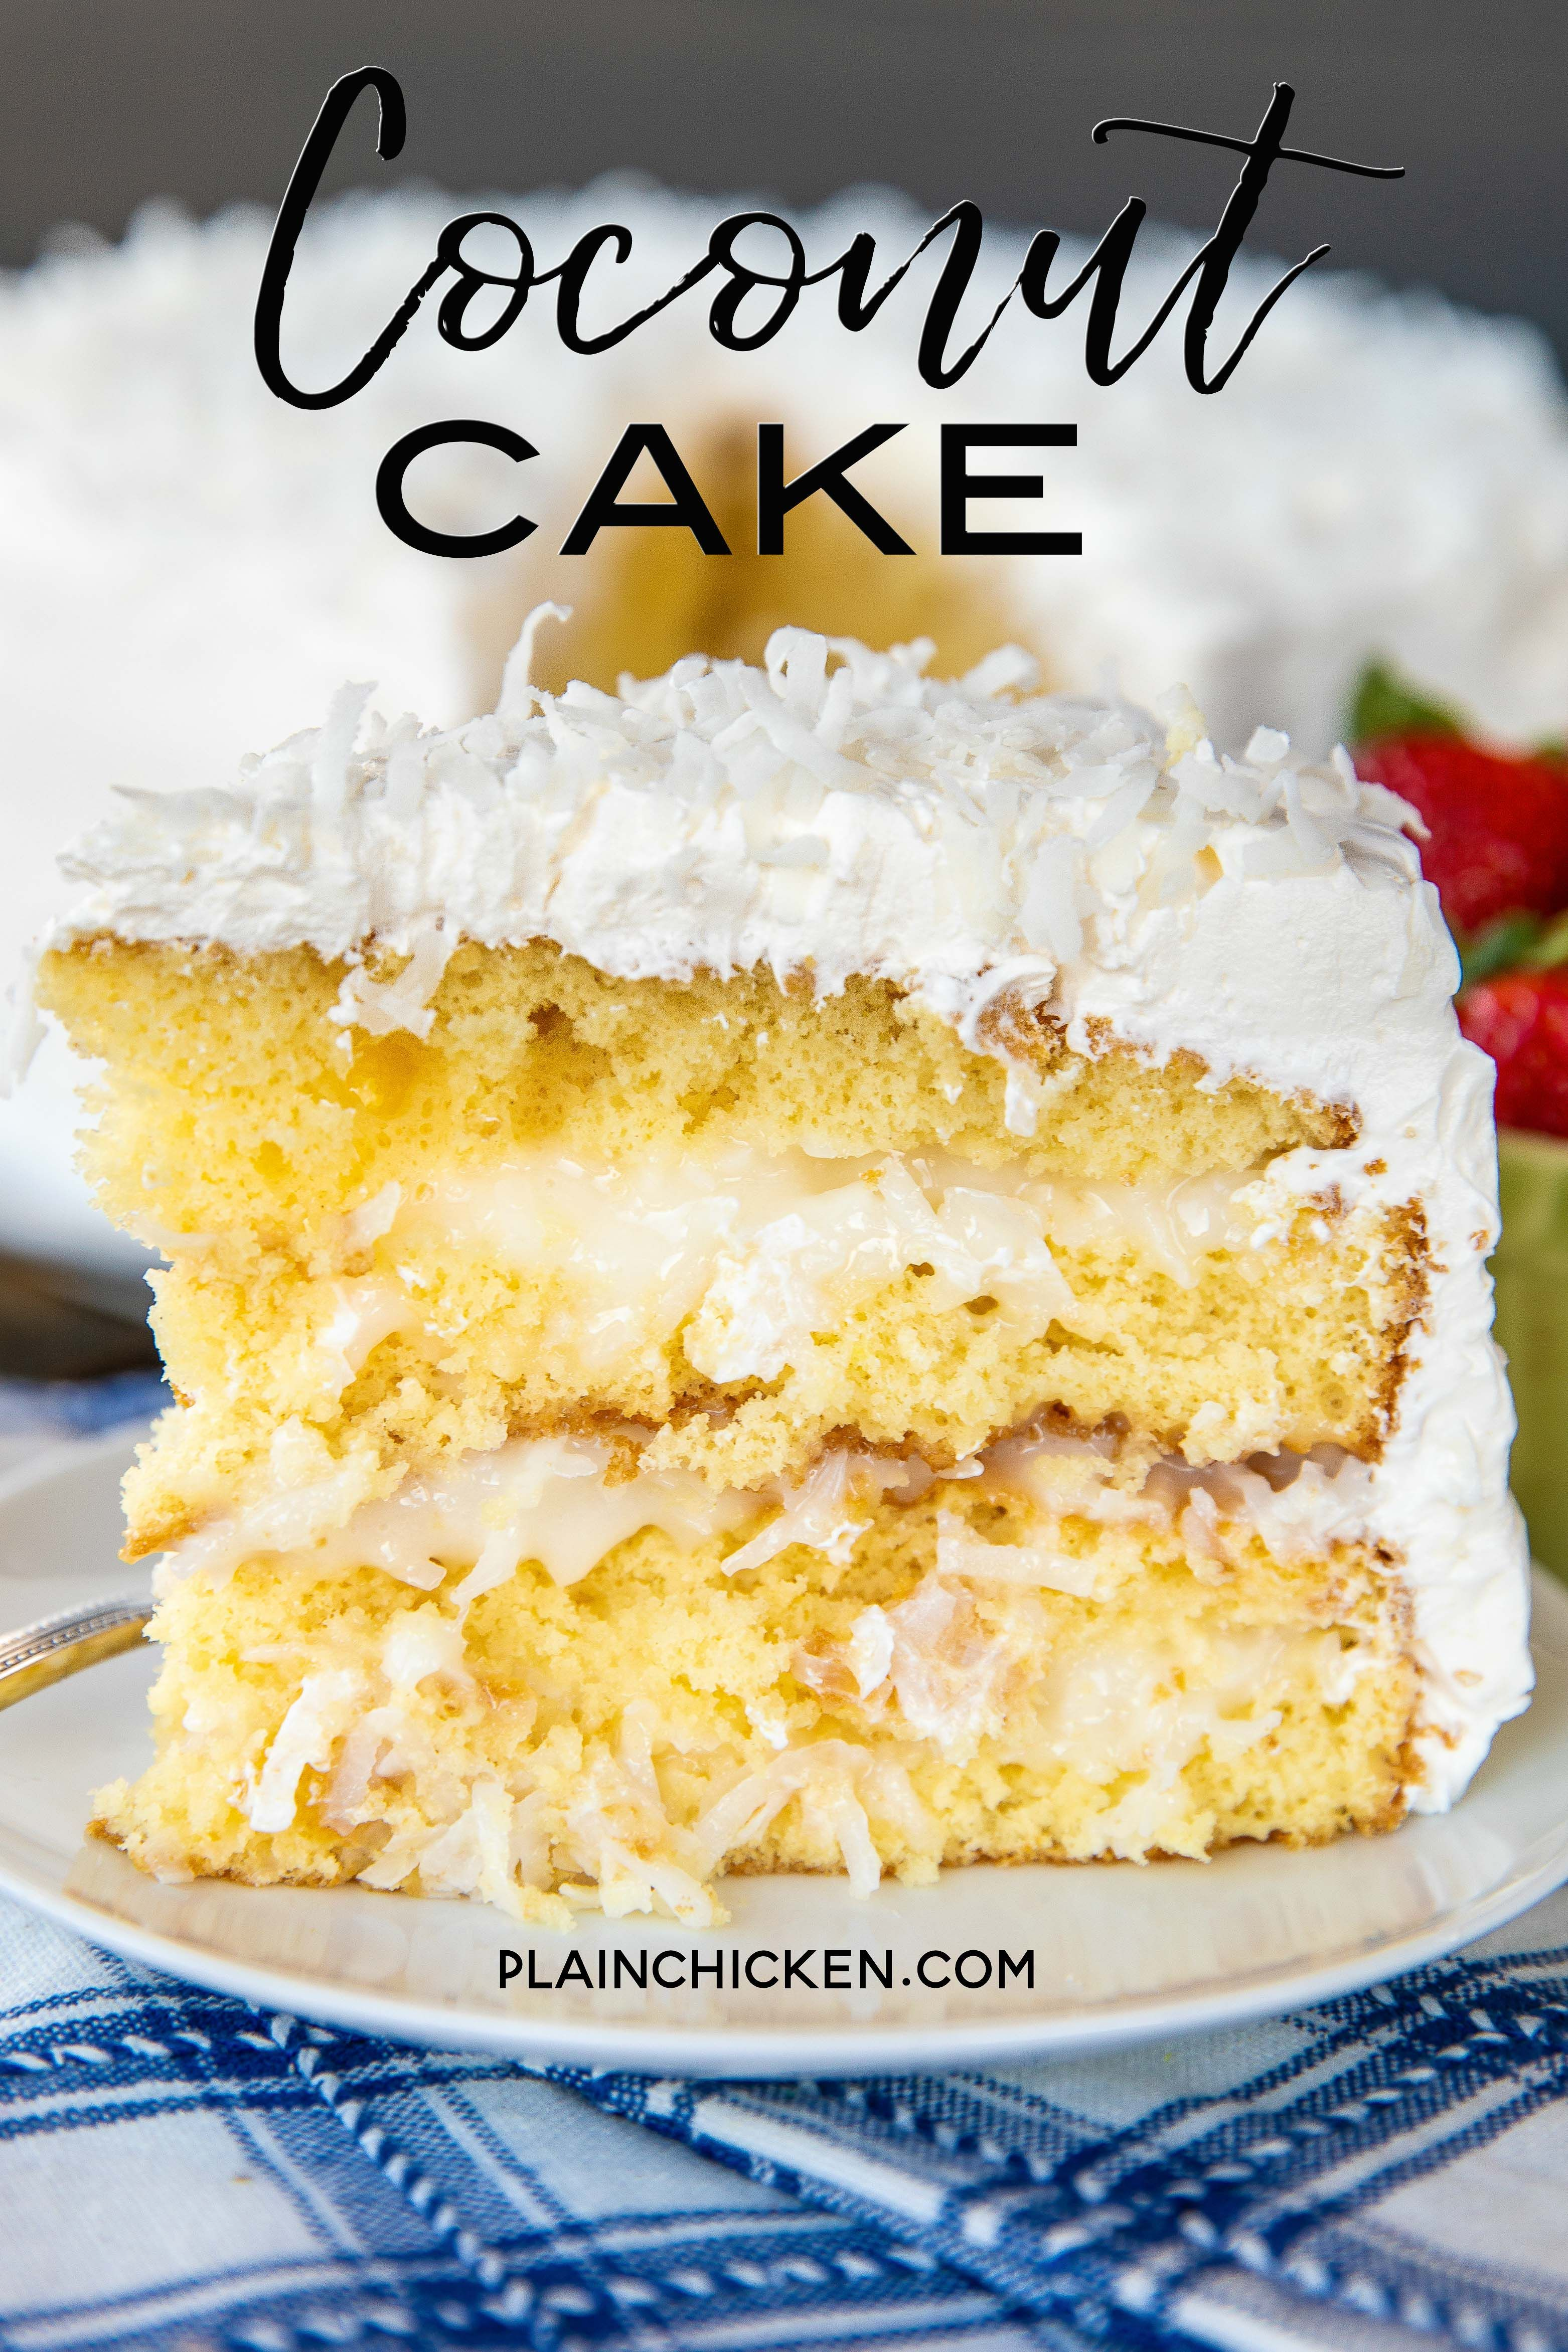 Coconut Cake The Sour Cream Cool Whip Frosting Makes This Cake It Is Amazing So Easy To Coconut Cake Recipe Sour Cream Coconut Cake Dessert Cake Recipes